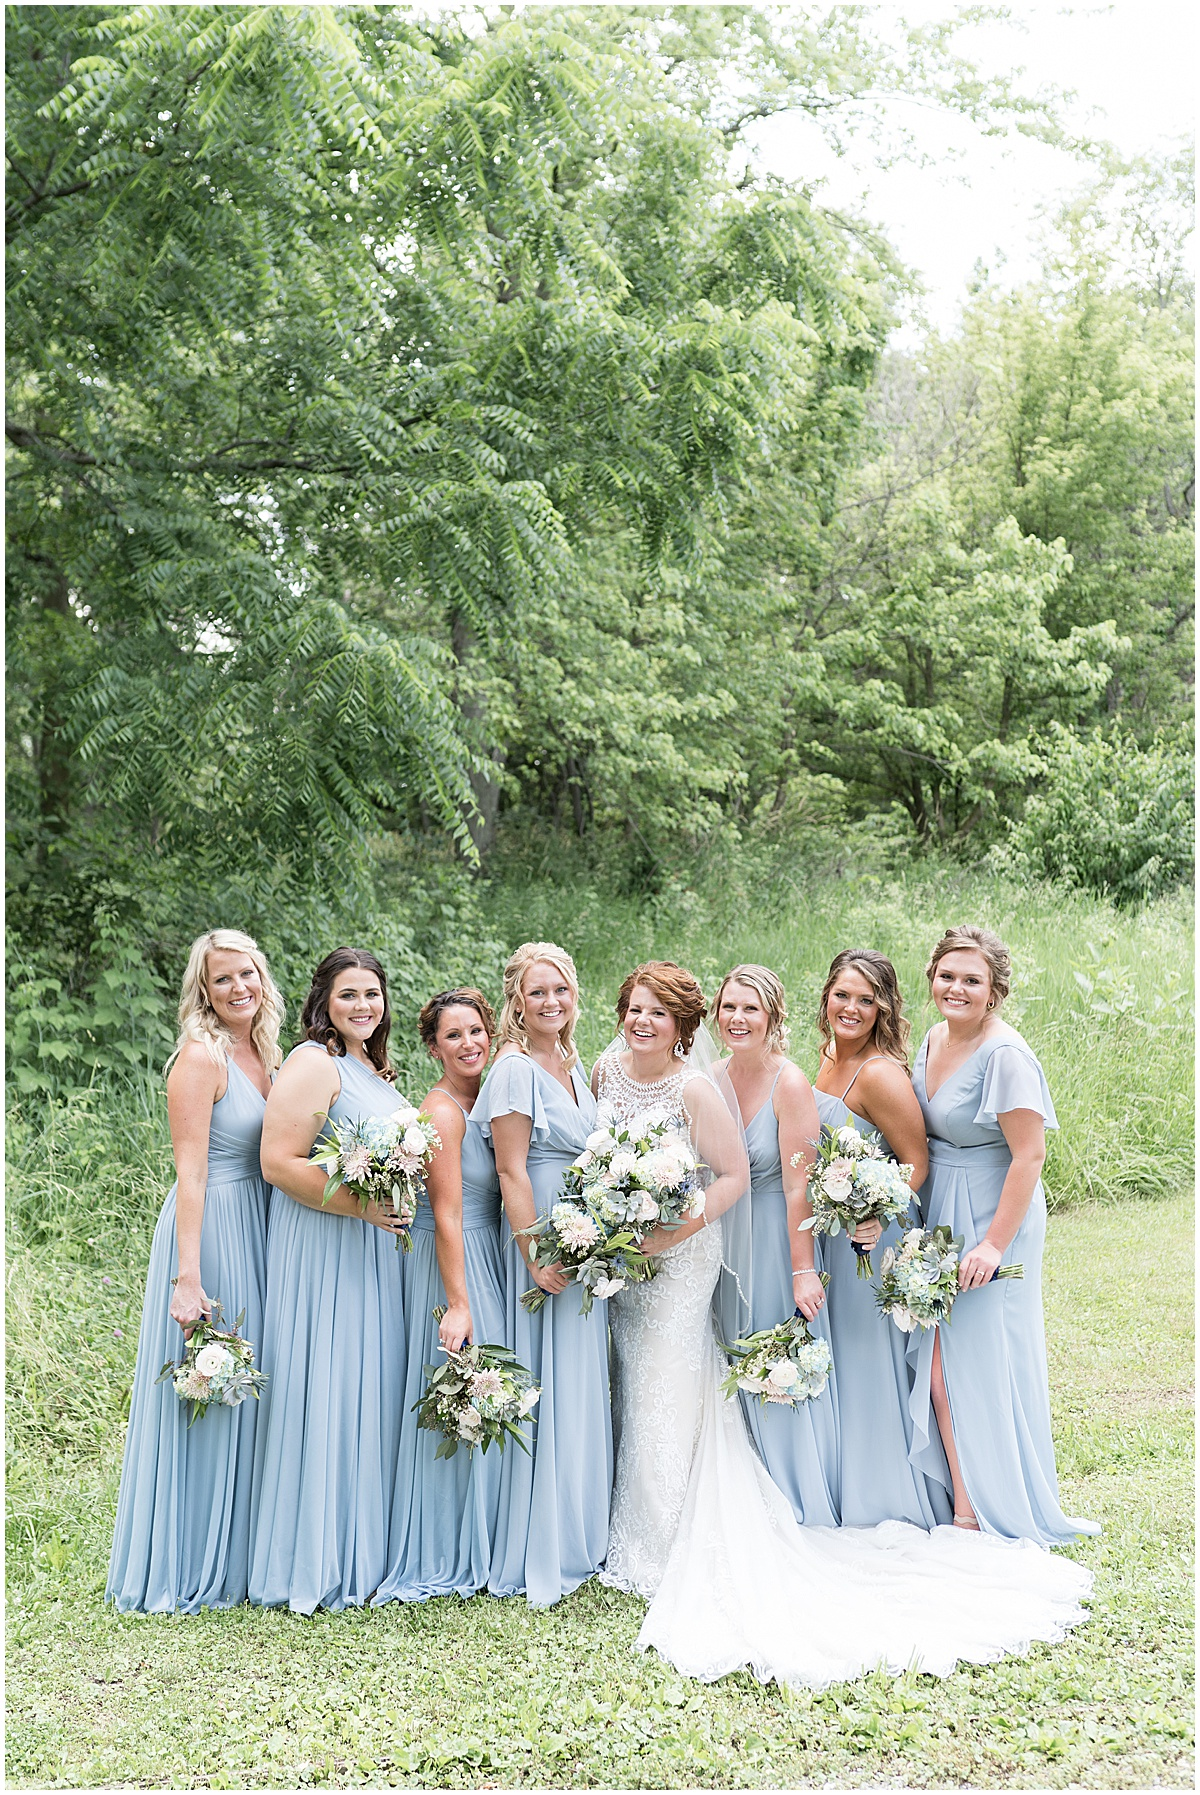 Bridesmaid photo at a wedding at The Brandywine in Monticello, Indiana